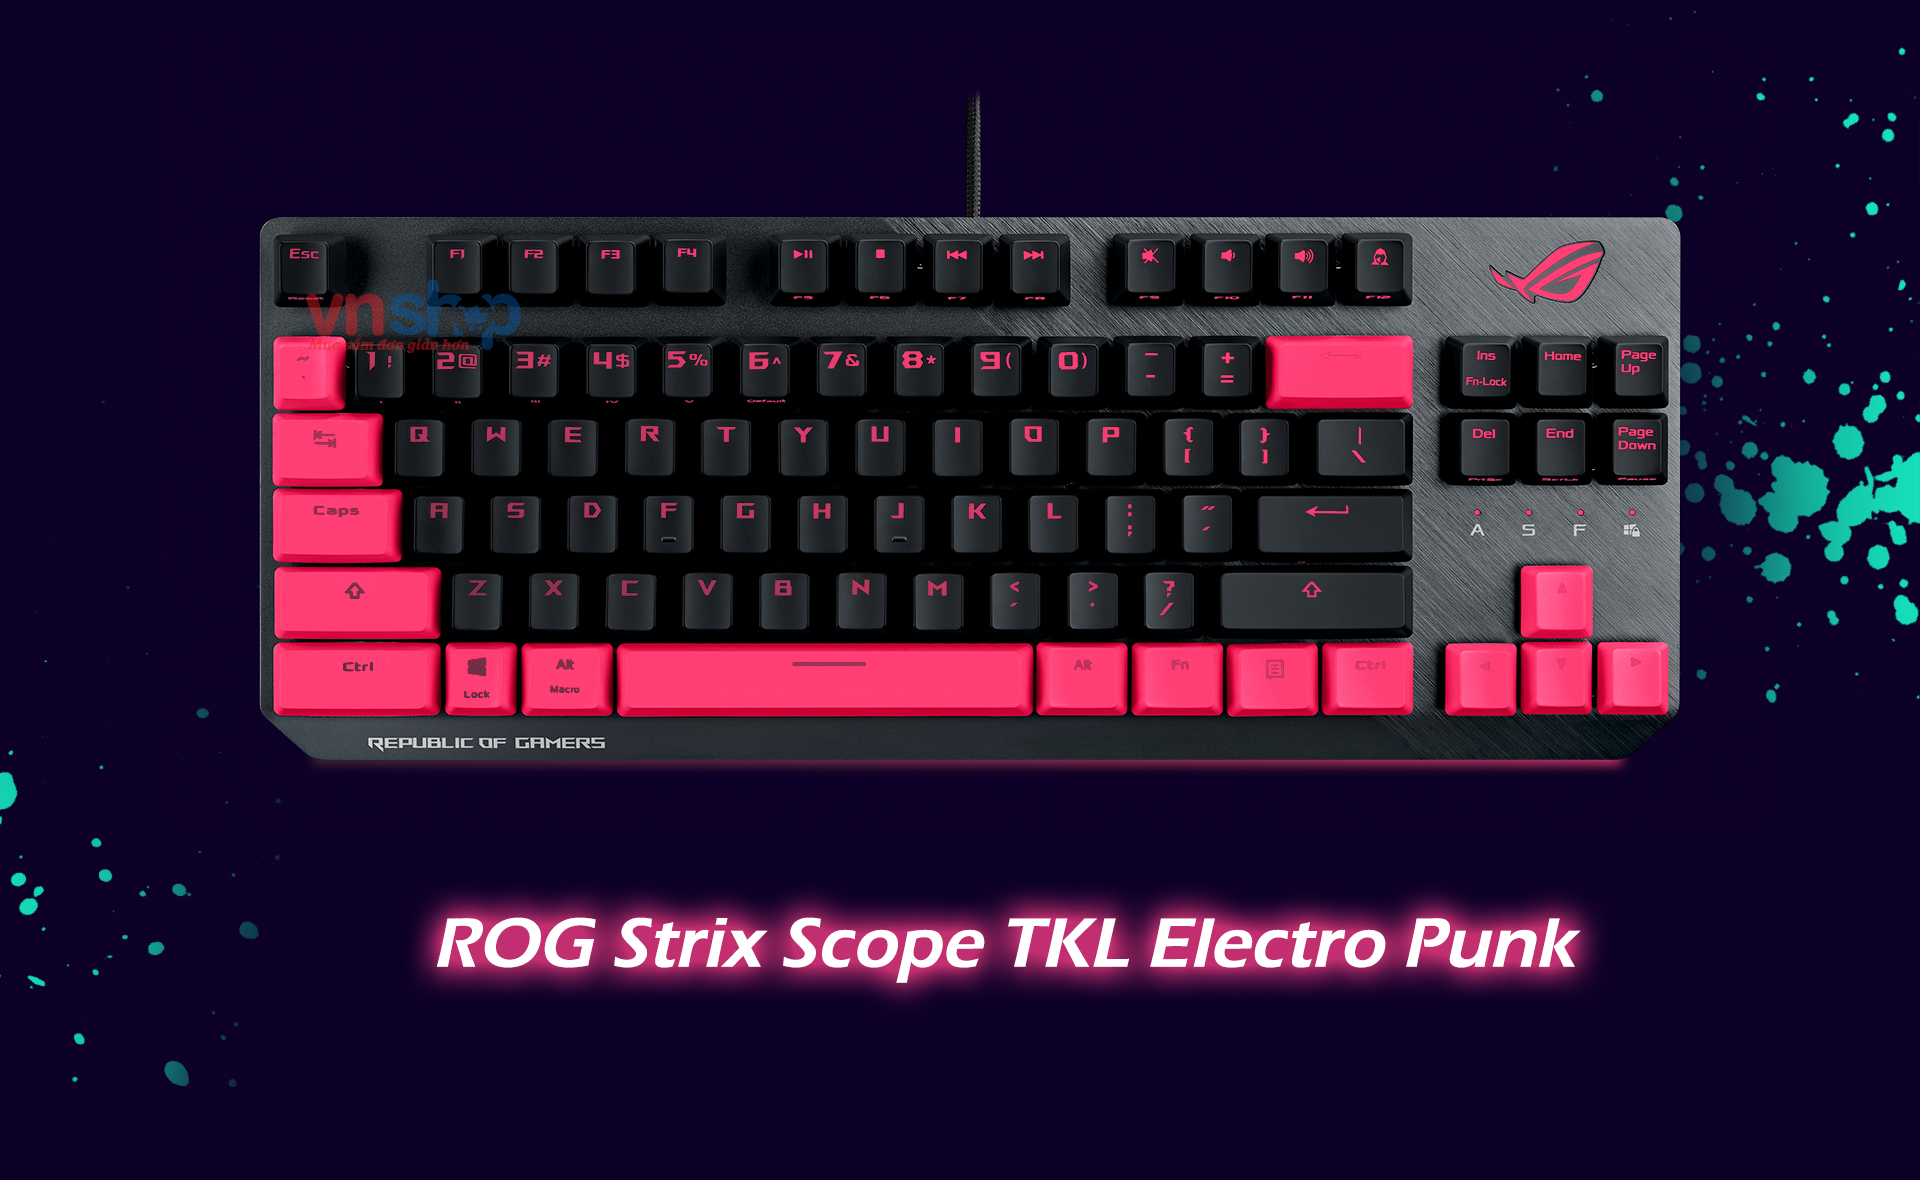 ROG Strix Scope TKL Electro Punk